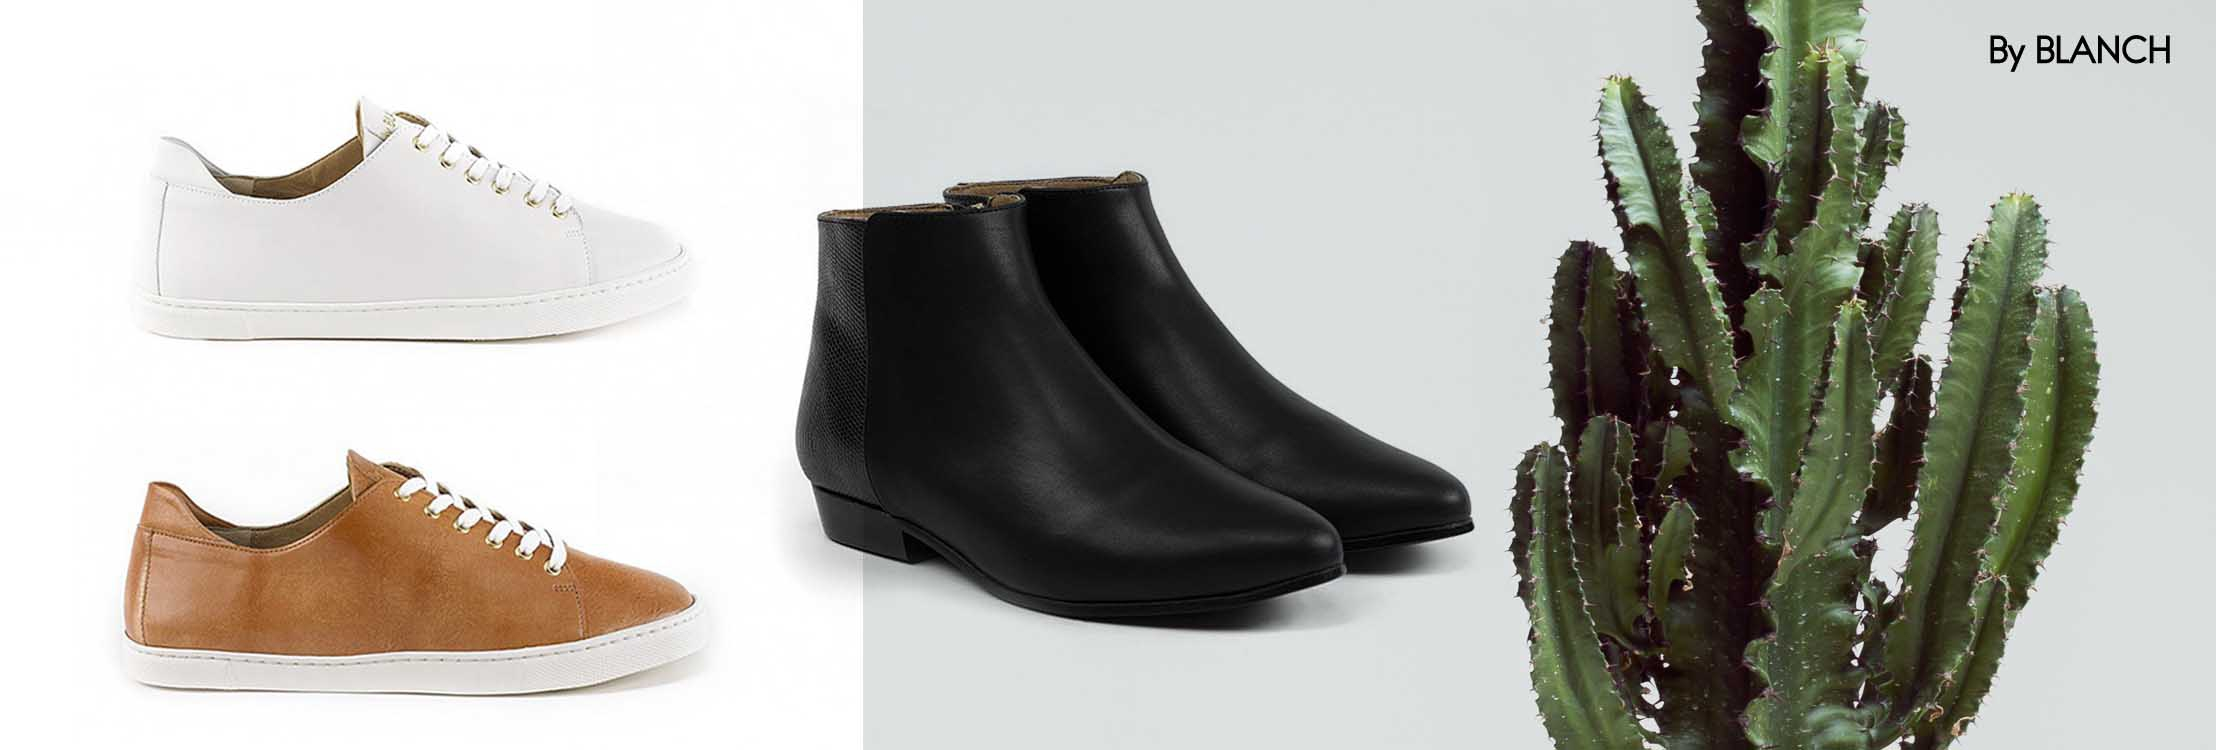 NEW COLLECTION   Vegan Shoes by BY BLANCH